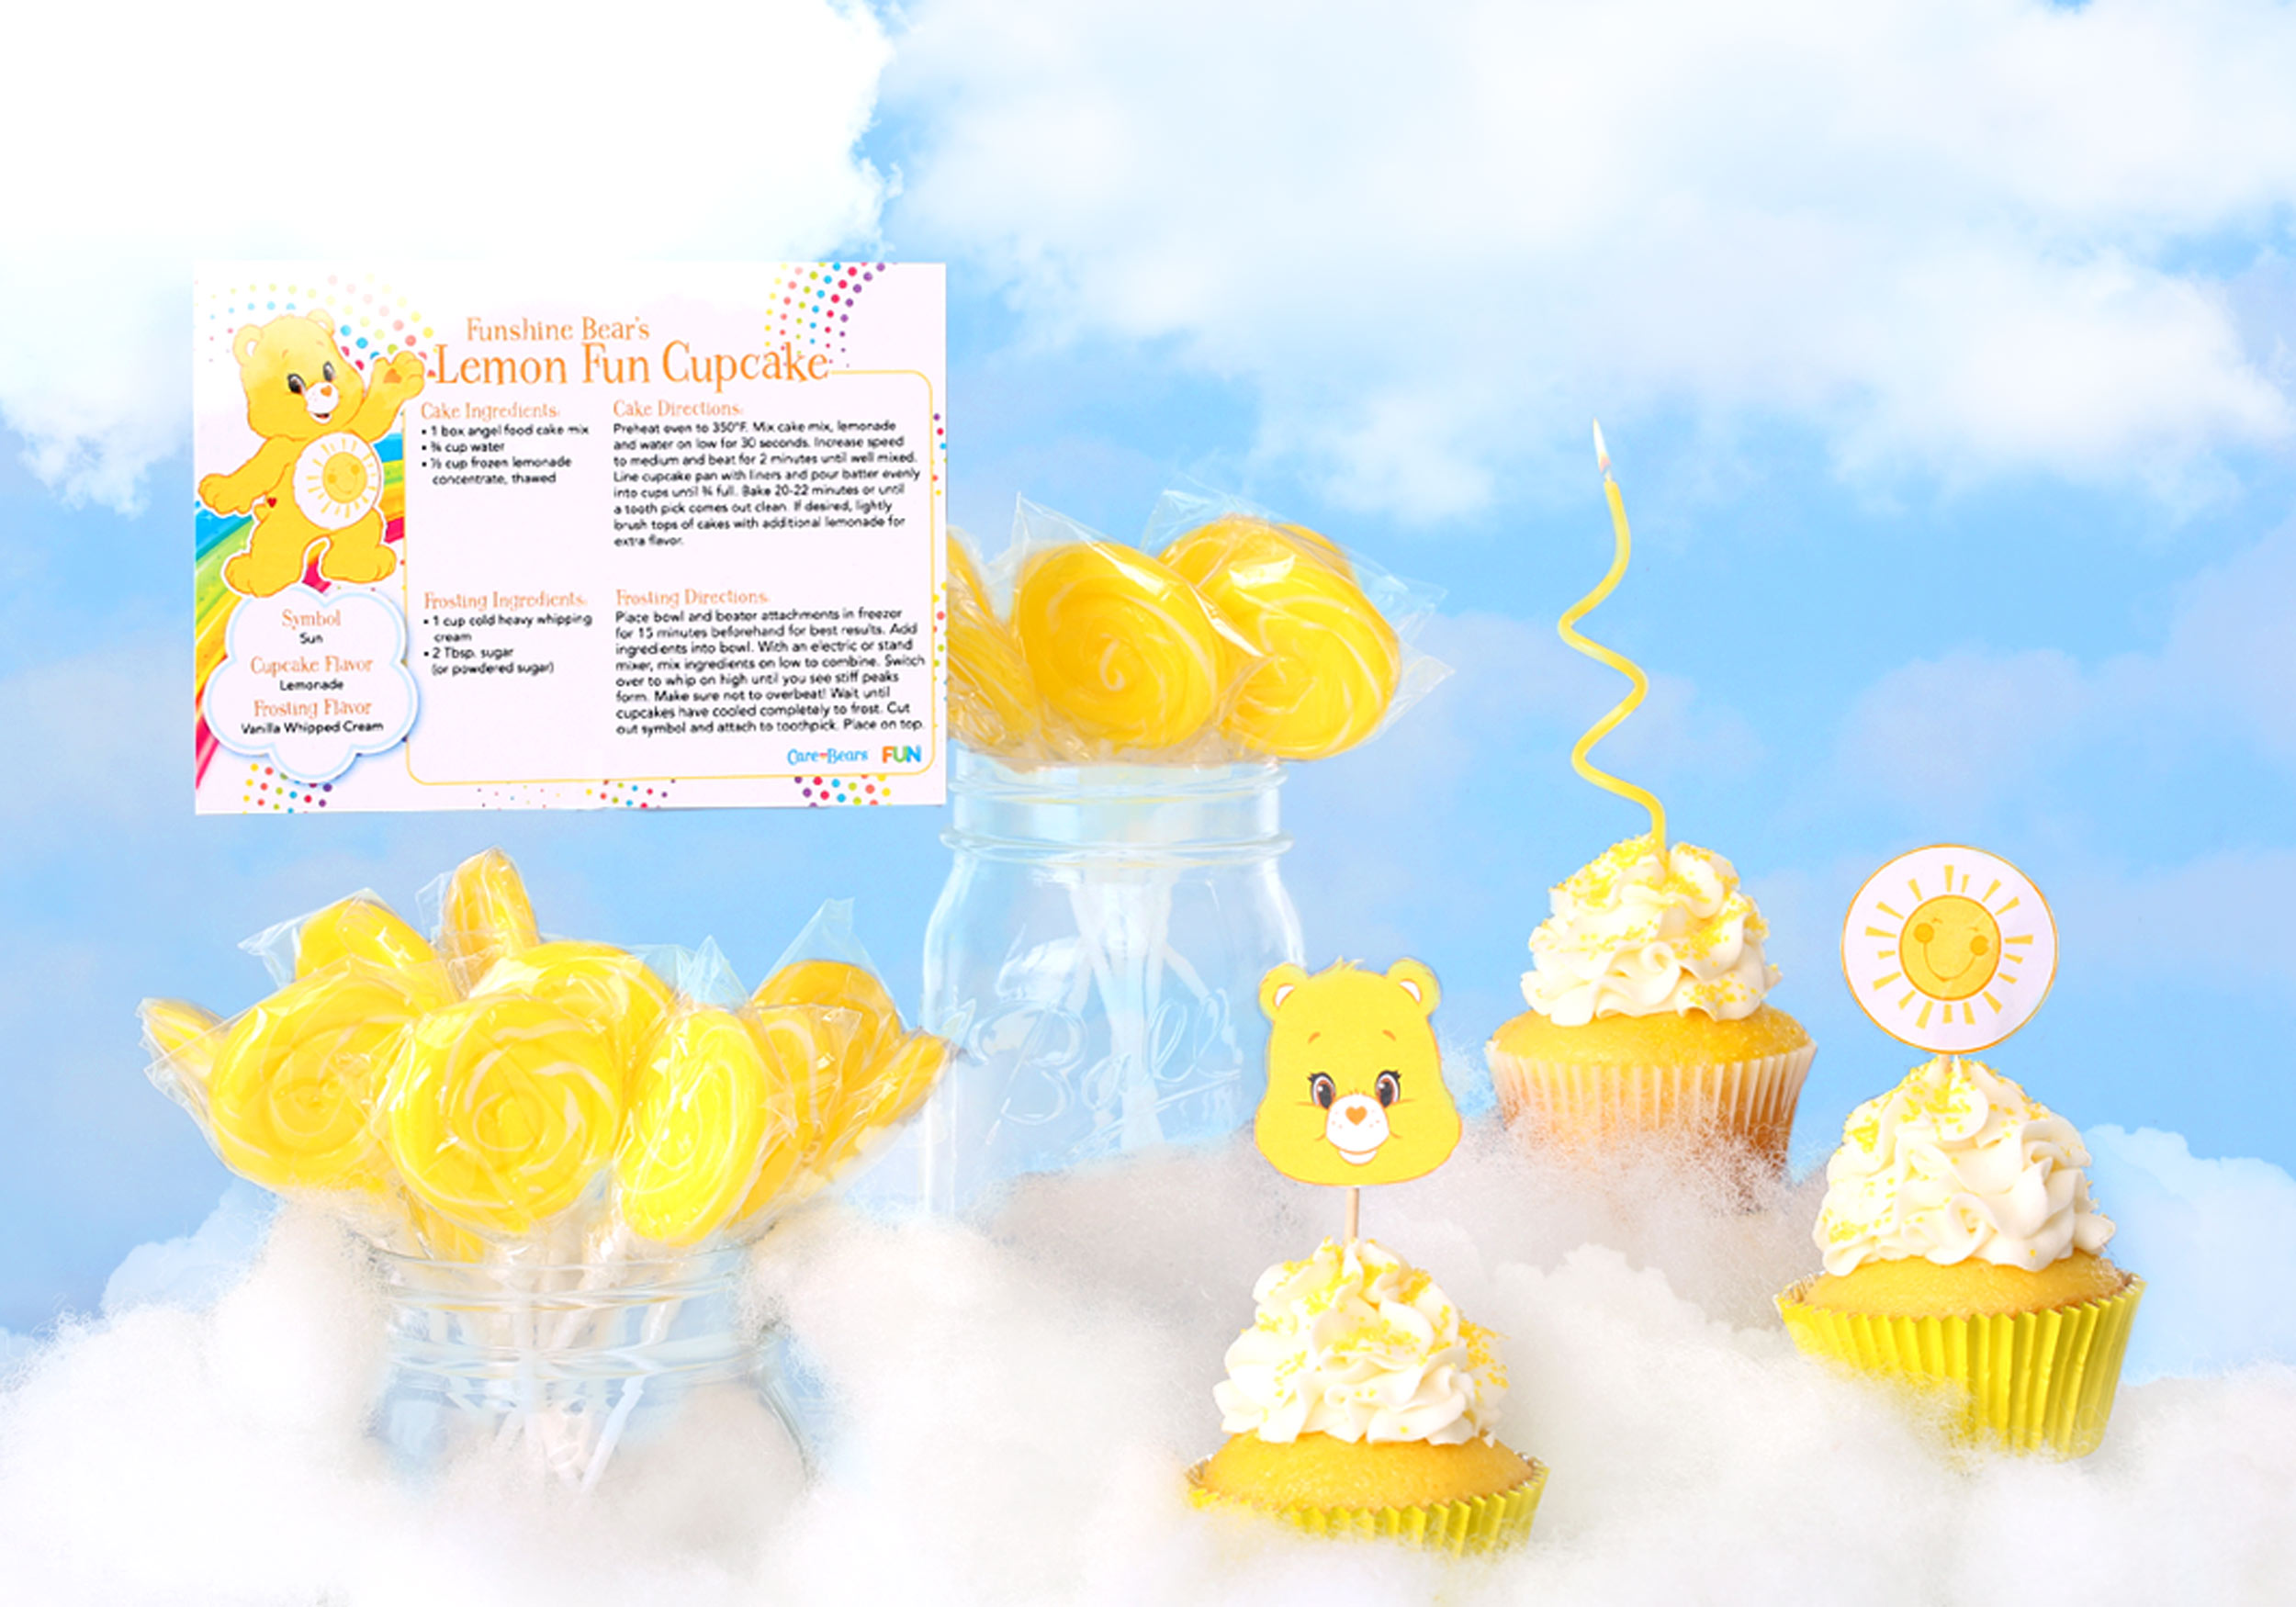 Funshine Bear recipe card